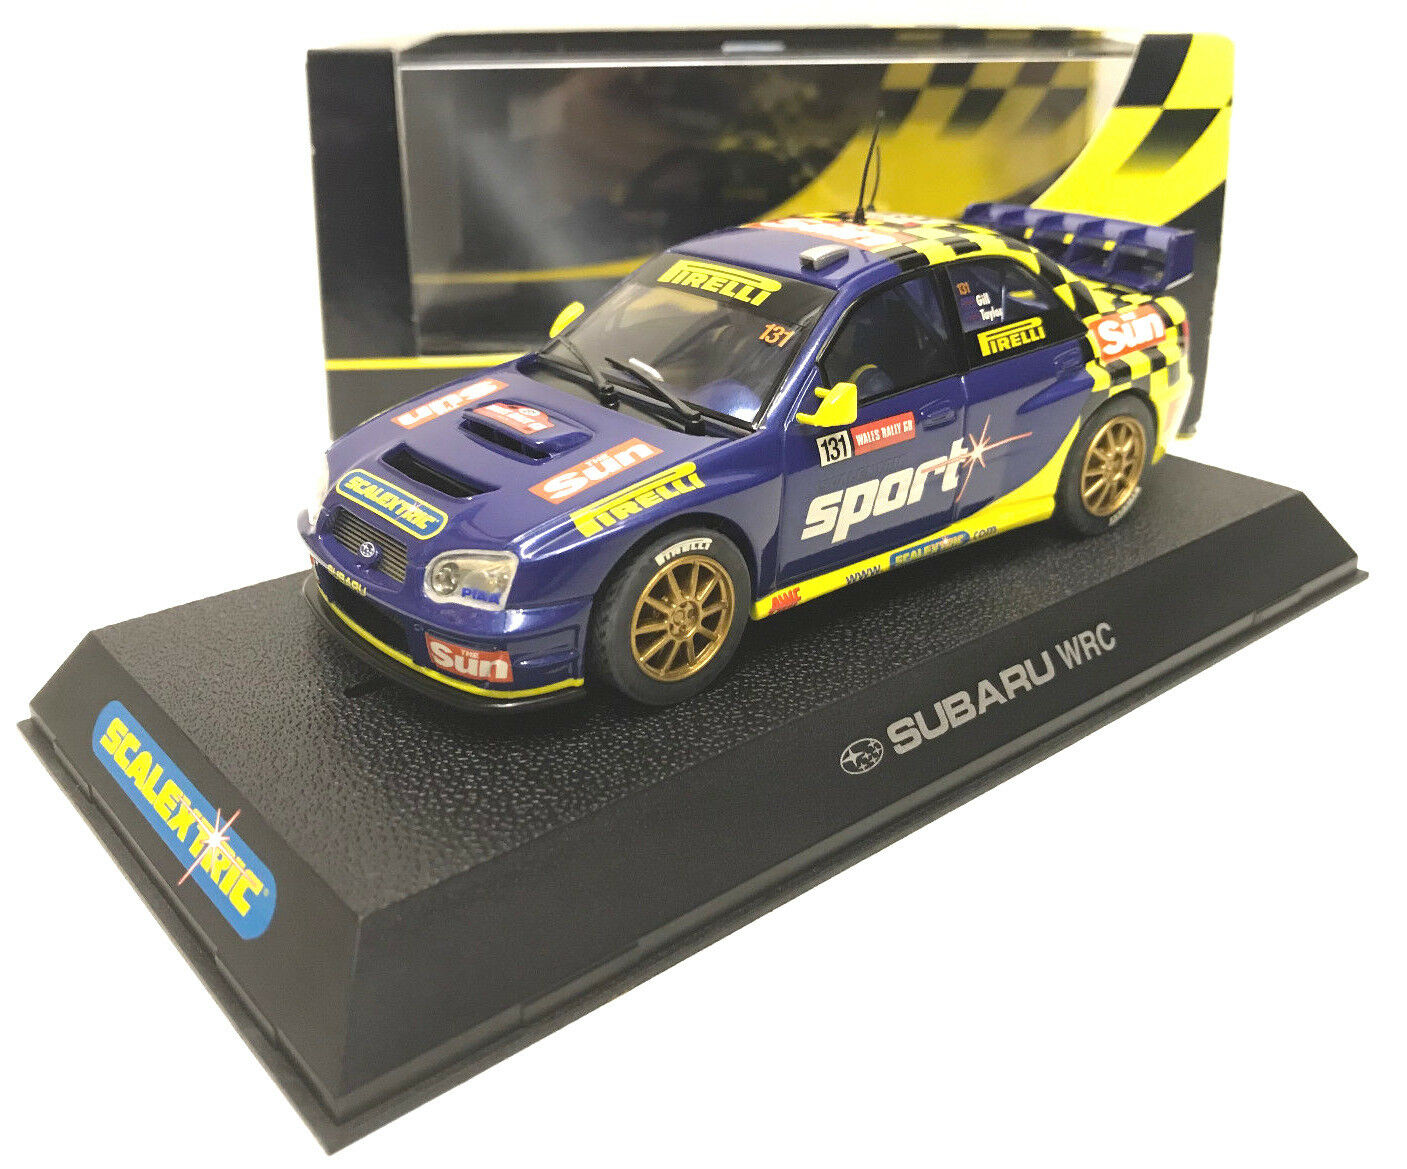 Scalextric C2550 Subaru Impreza Wales WRC The Sun Slot Car bluee Yellow New